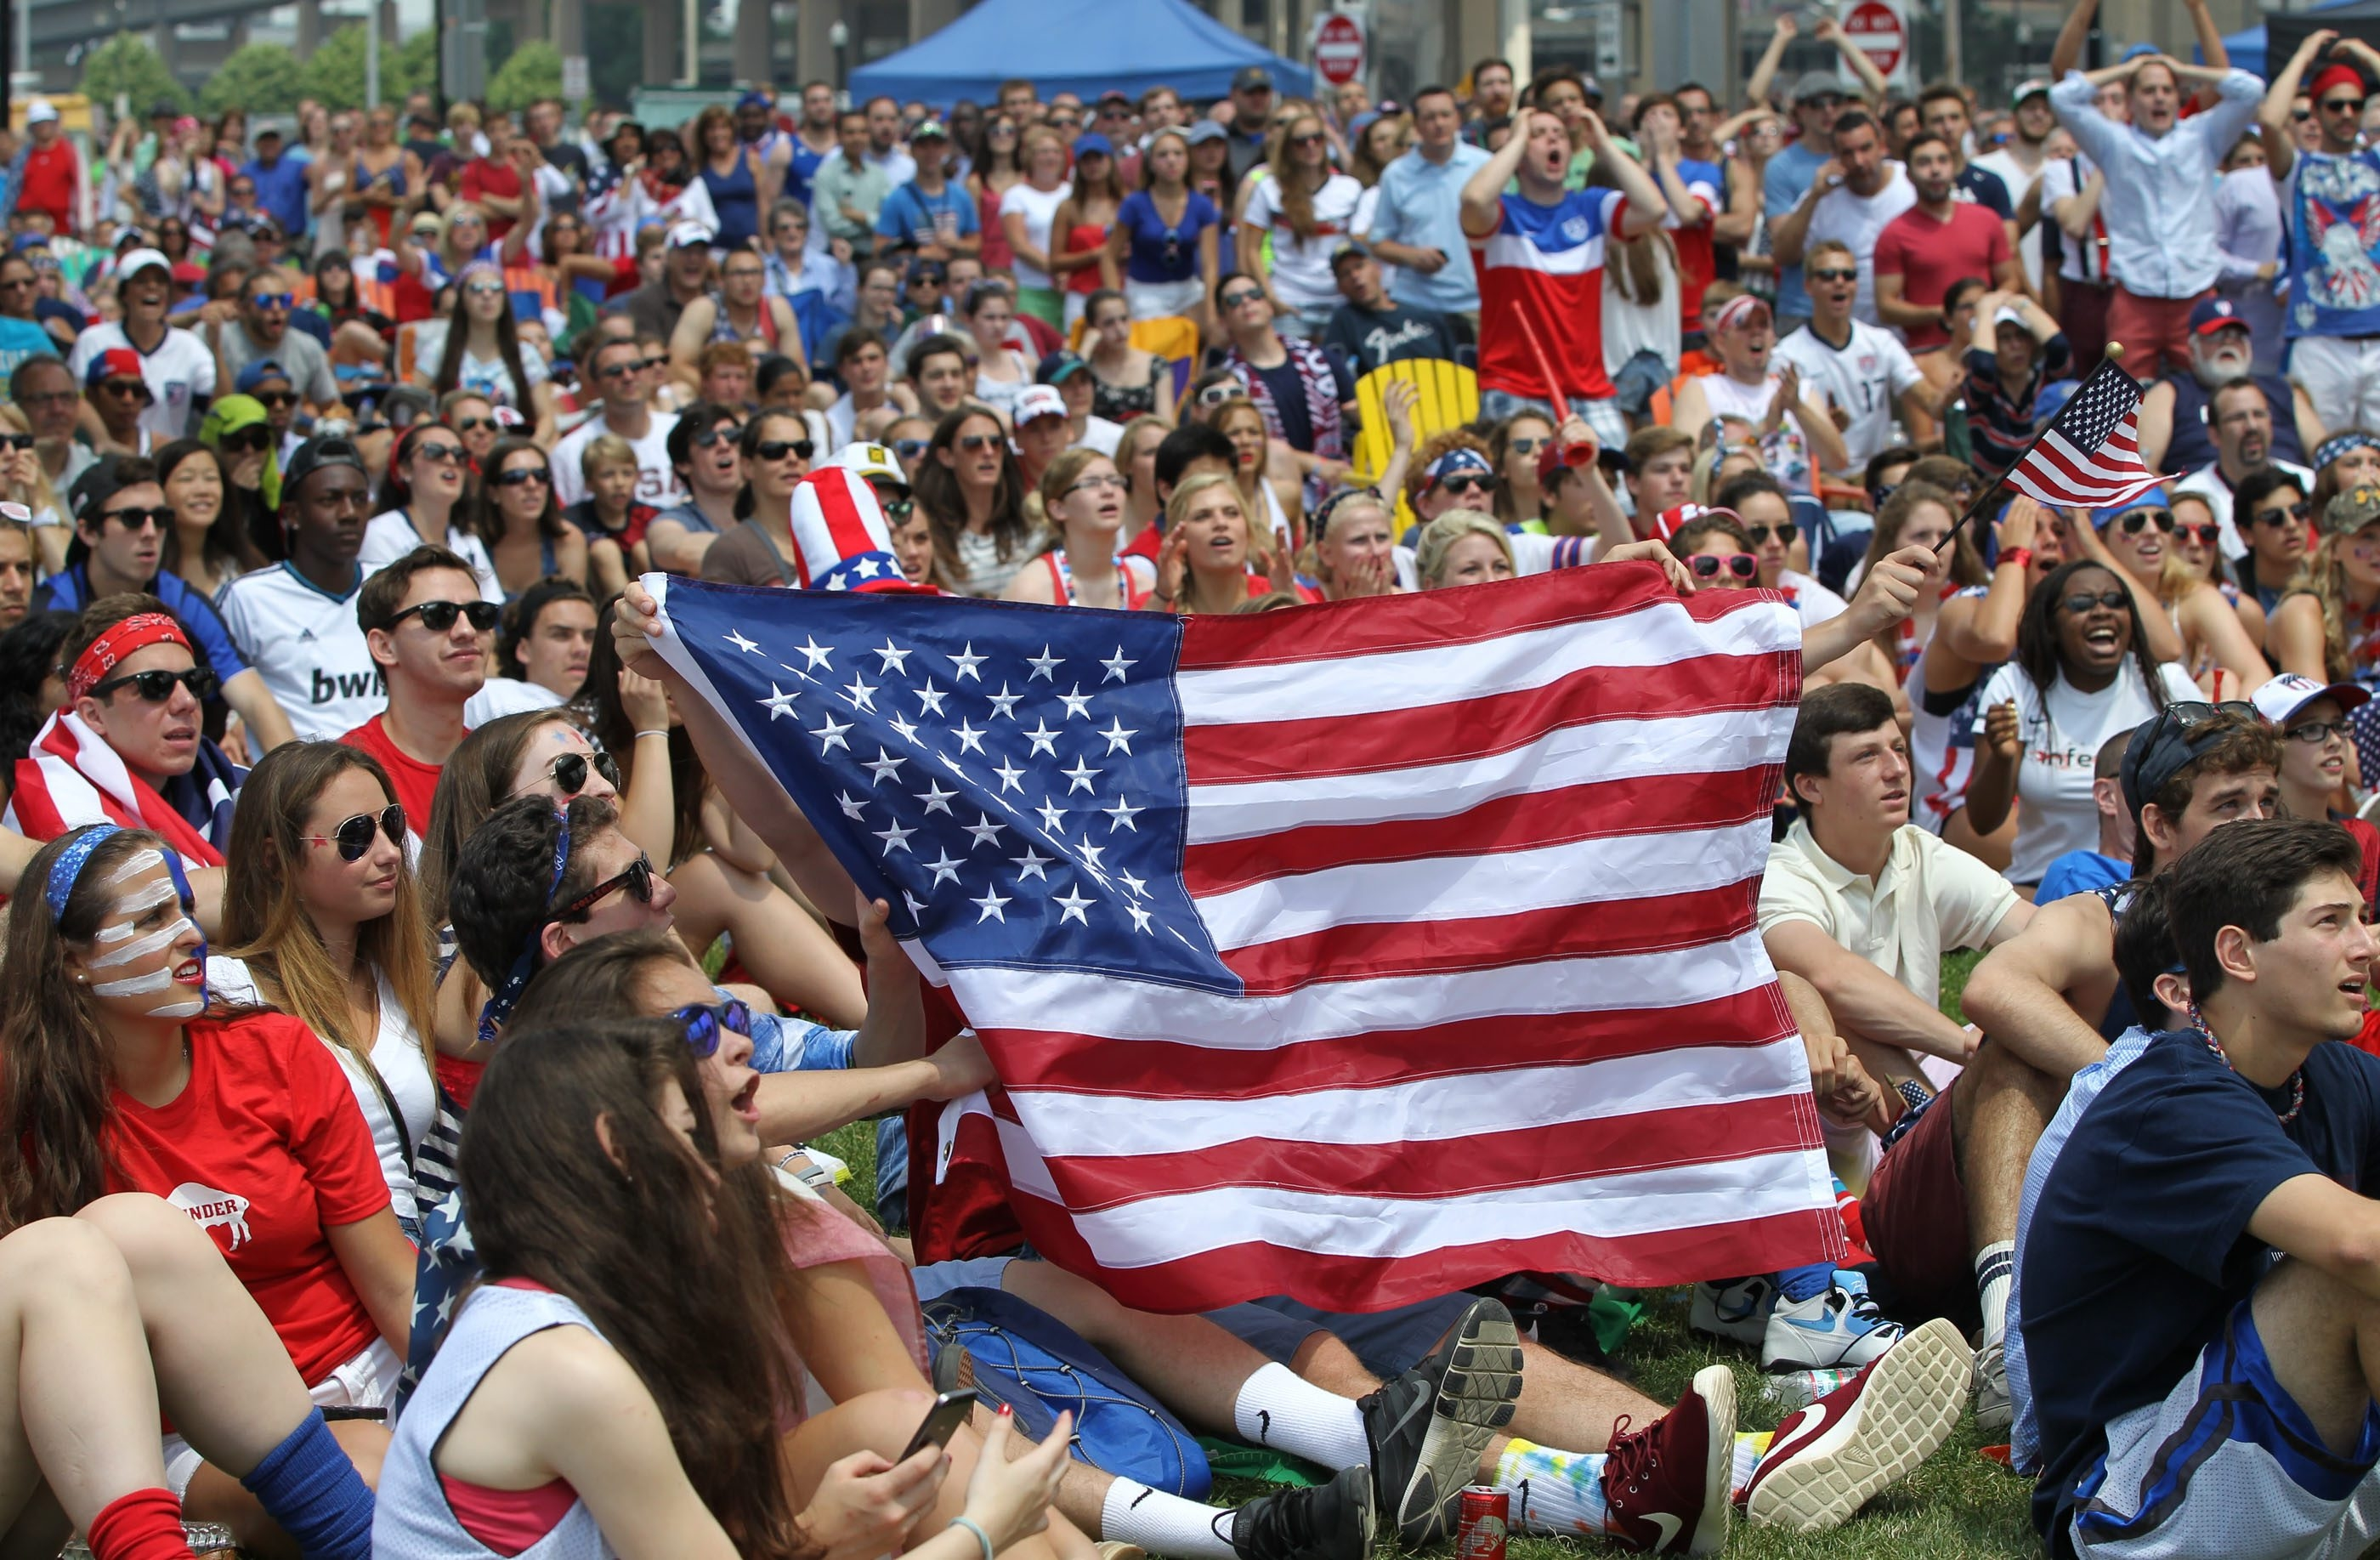 Thousands of USA fans  watch the USA vs German World Cup soccer on large screen TV's at Canalside in Buffalo,NY on Thursday, June 26, 2014.  (James P. McCoy/ Buffalo News)